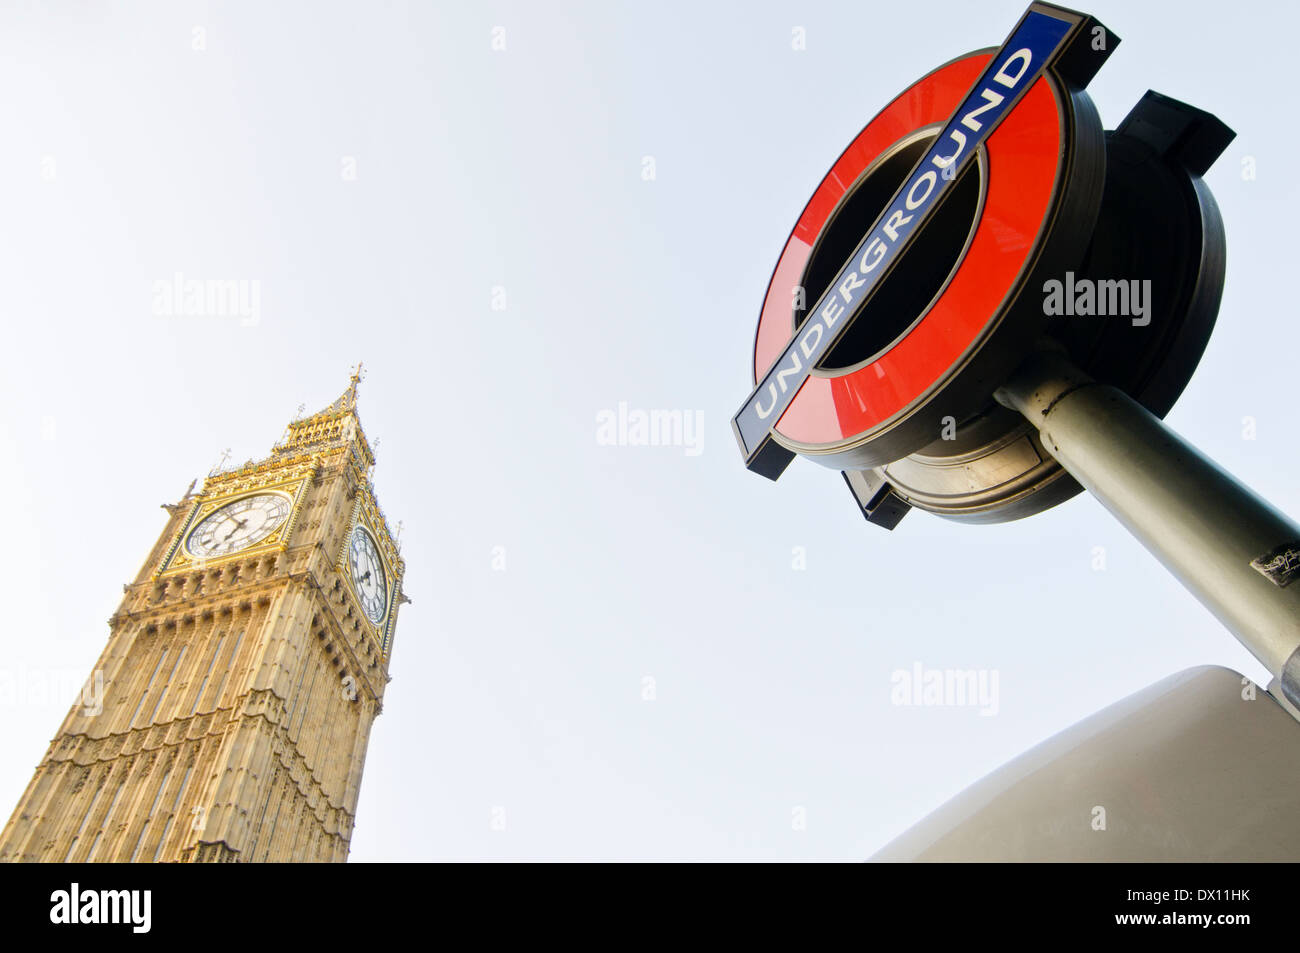 London, UK - April 30, 2011: Big Ben and The Roundel, logo of the Underground Tube transport in London or TFL. - Stock Image